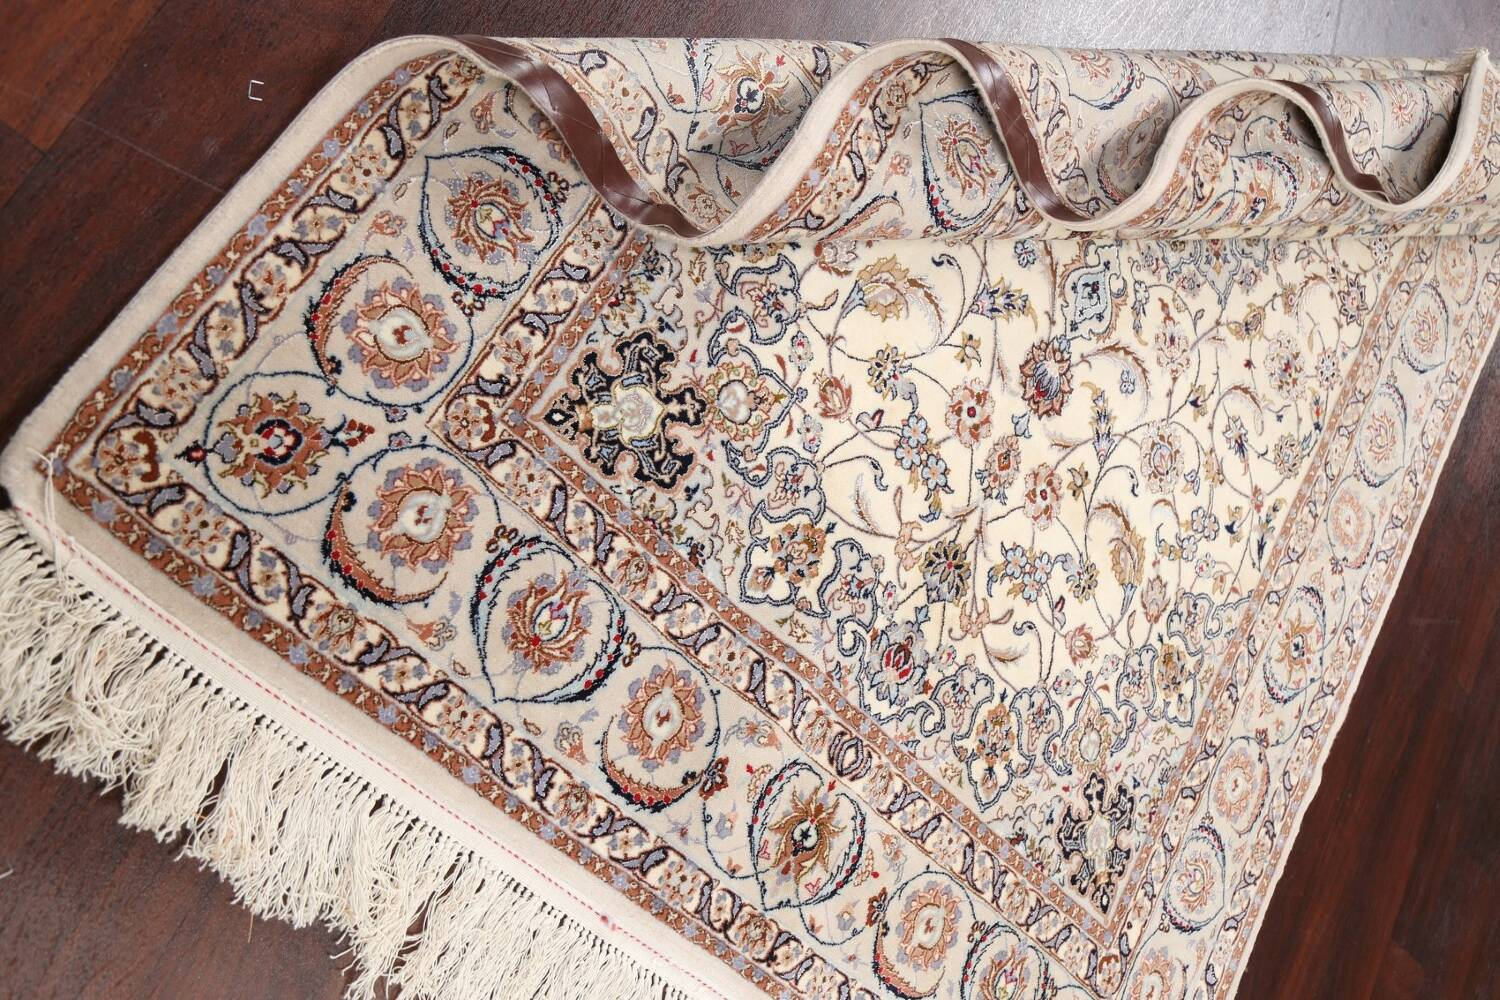 100% Vegetable Dye Floral Isfahan Persian Area Rug 5x8 image 16